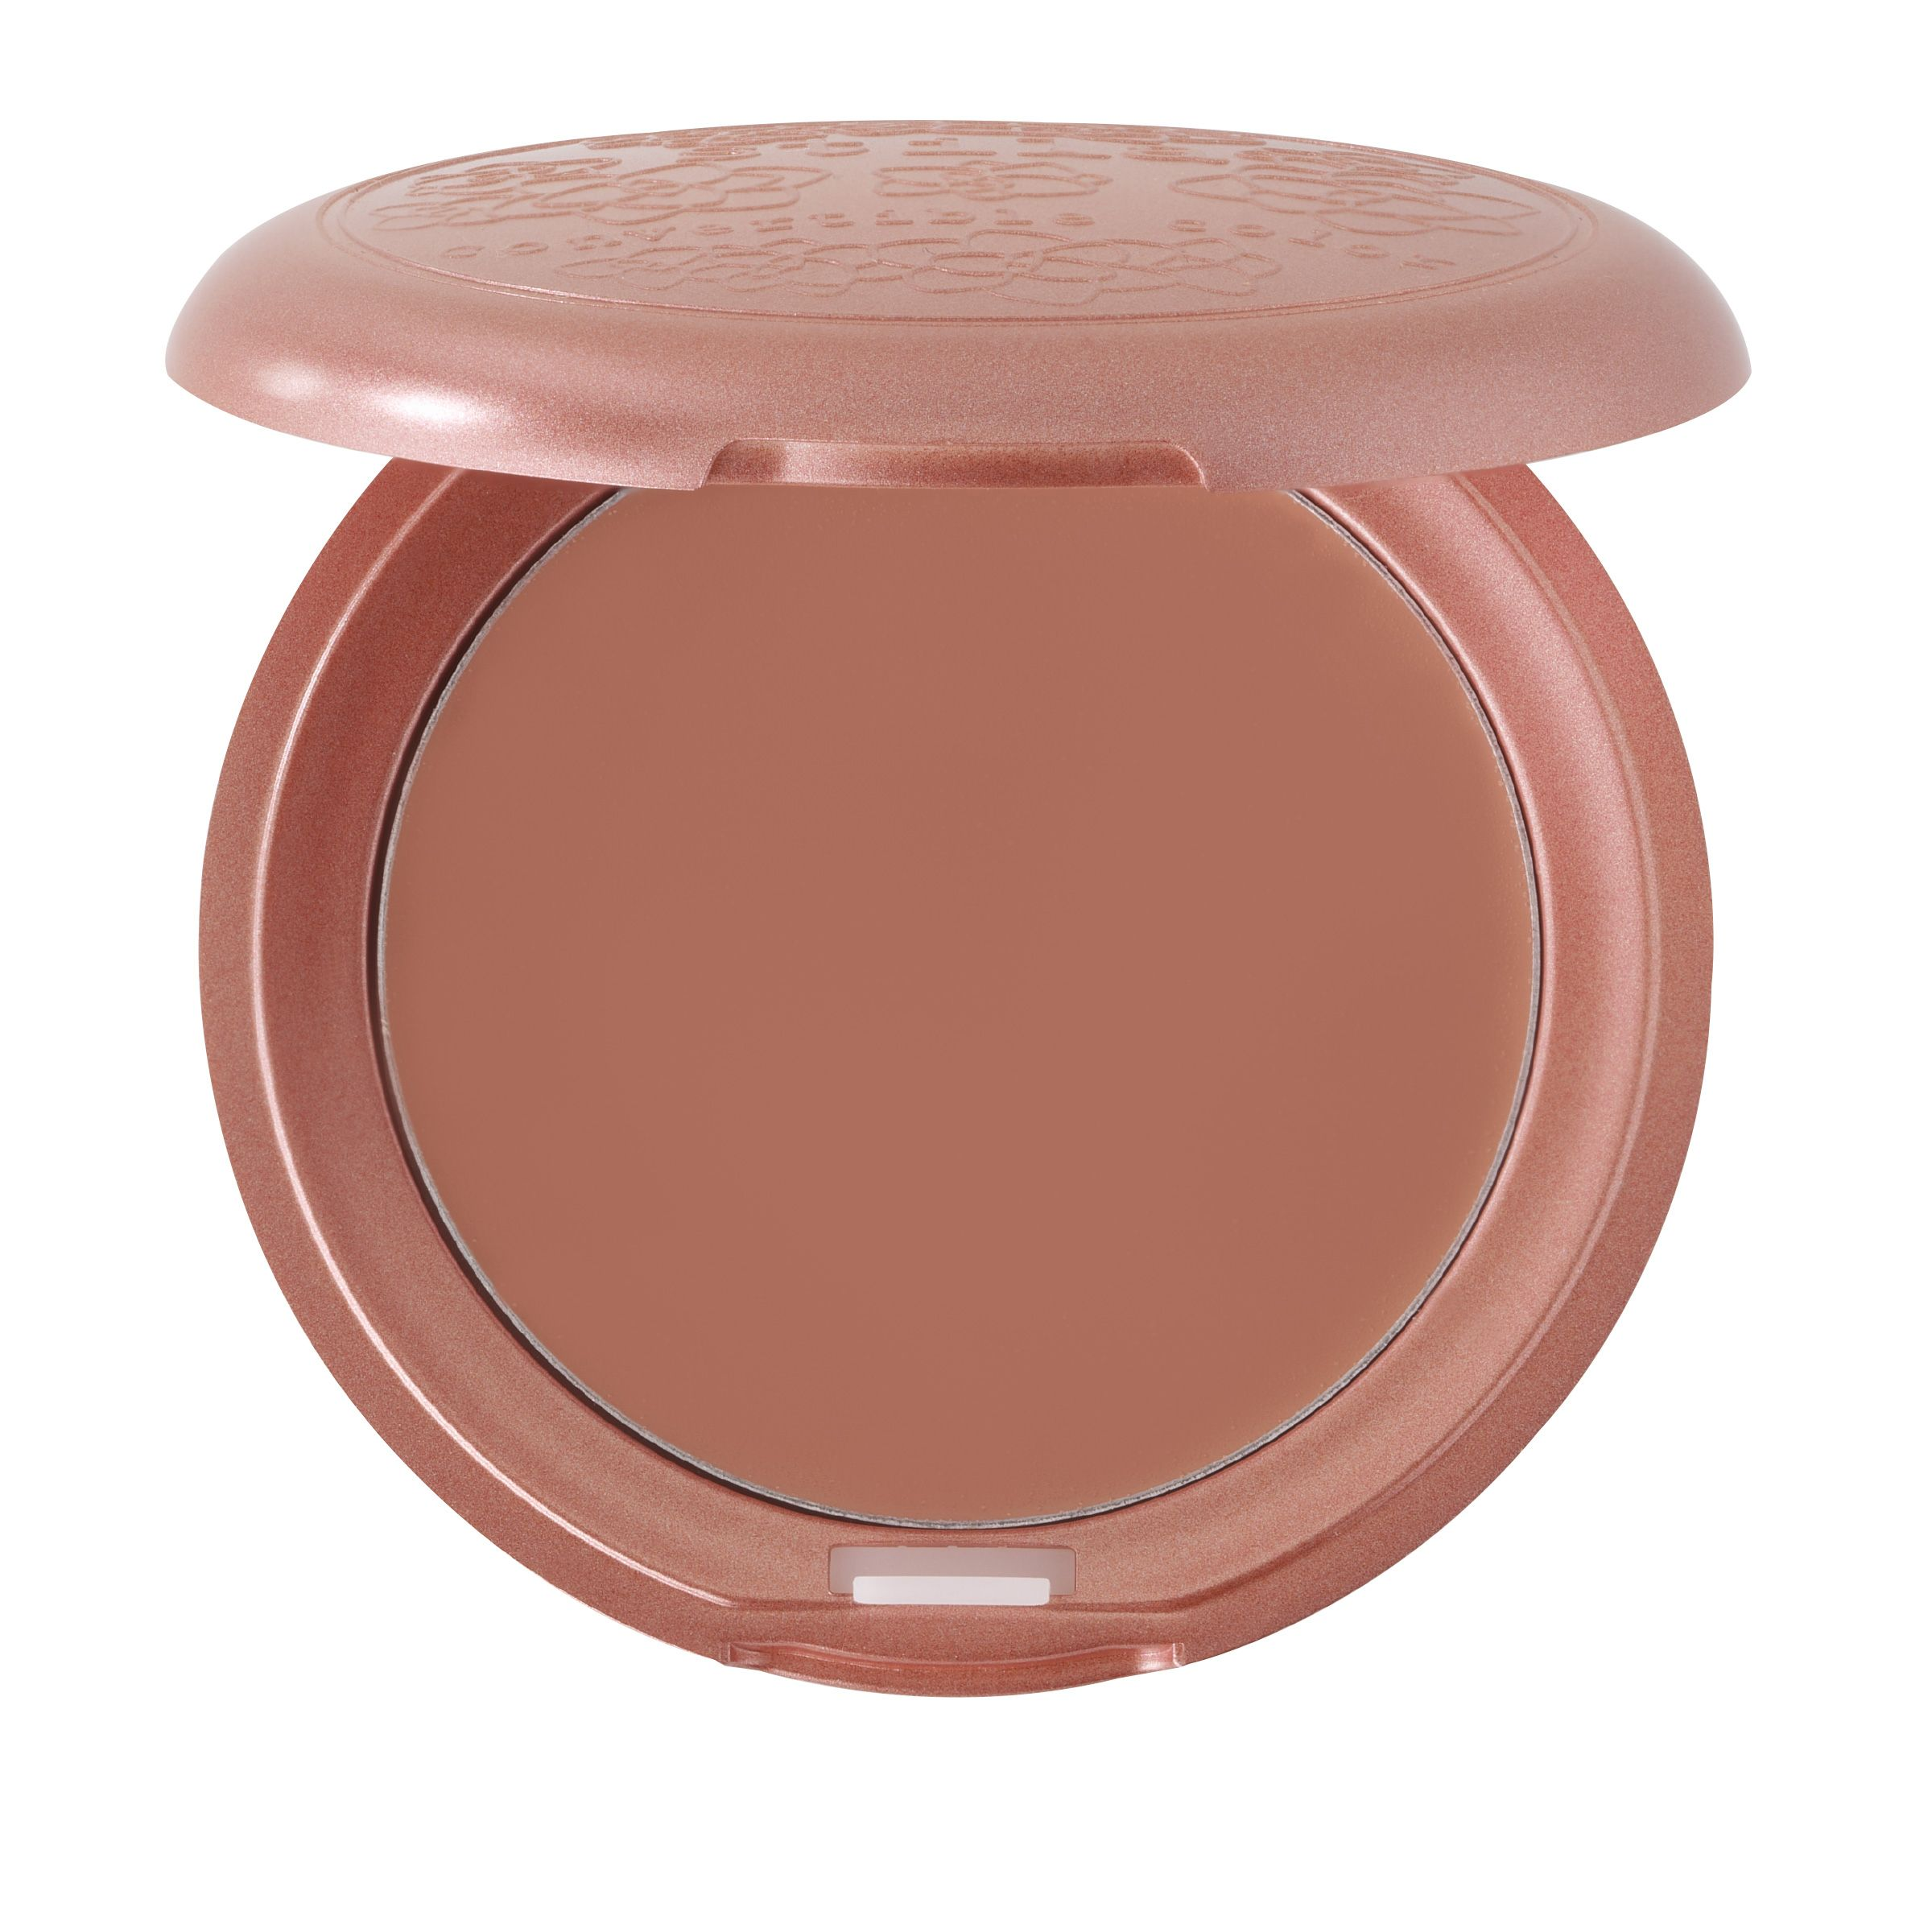 Stila Convertible Colour Dual Lip and Cheek Cream Lillium